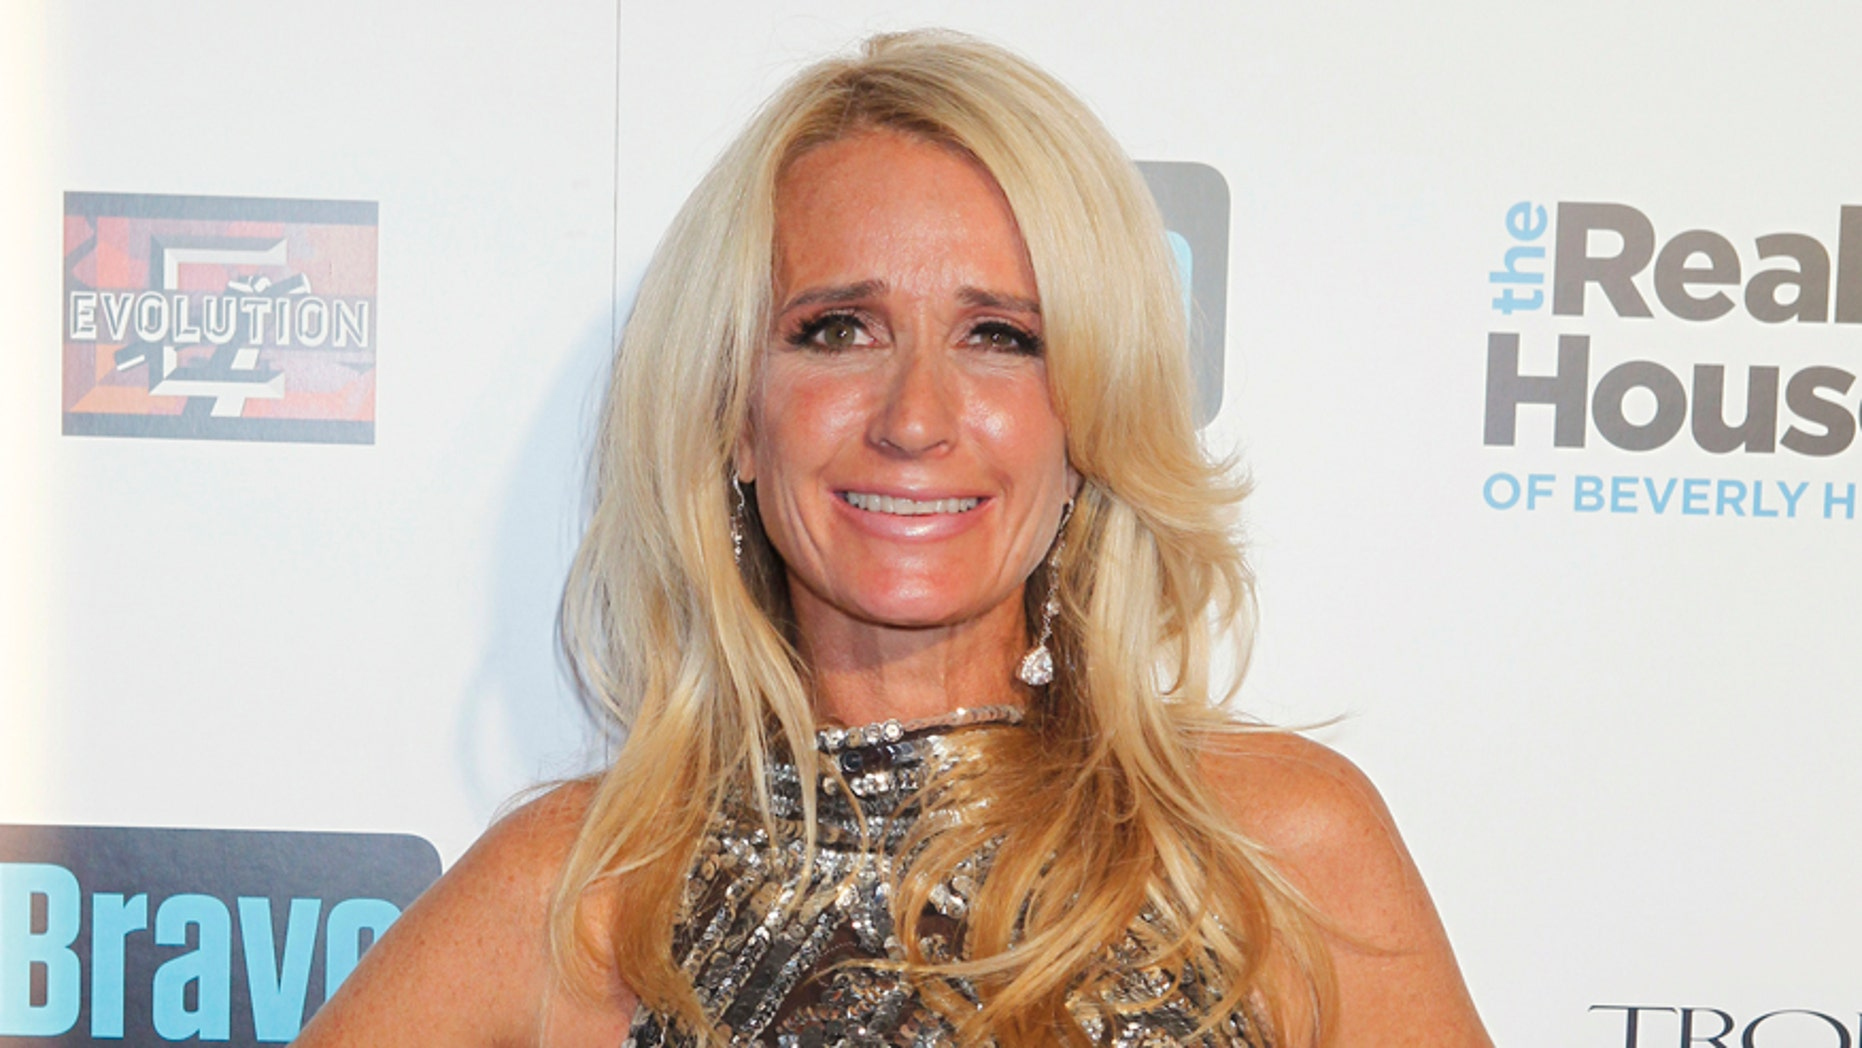 """October 11, 2010. Cast member Kim Richards of Bravo's reality series """"The Real Housewives of Beverly Hills."""""""